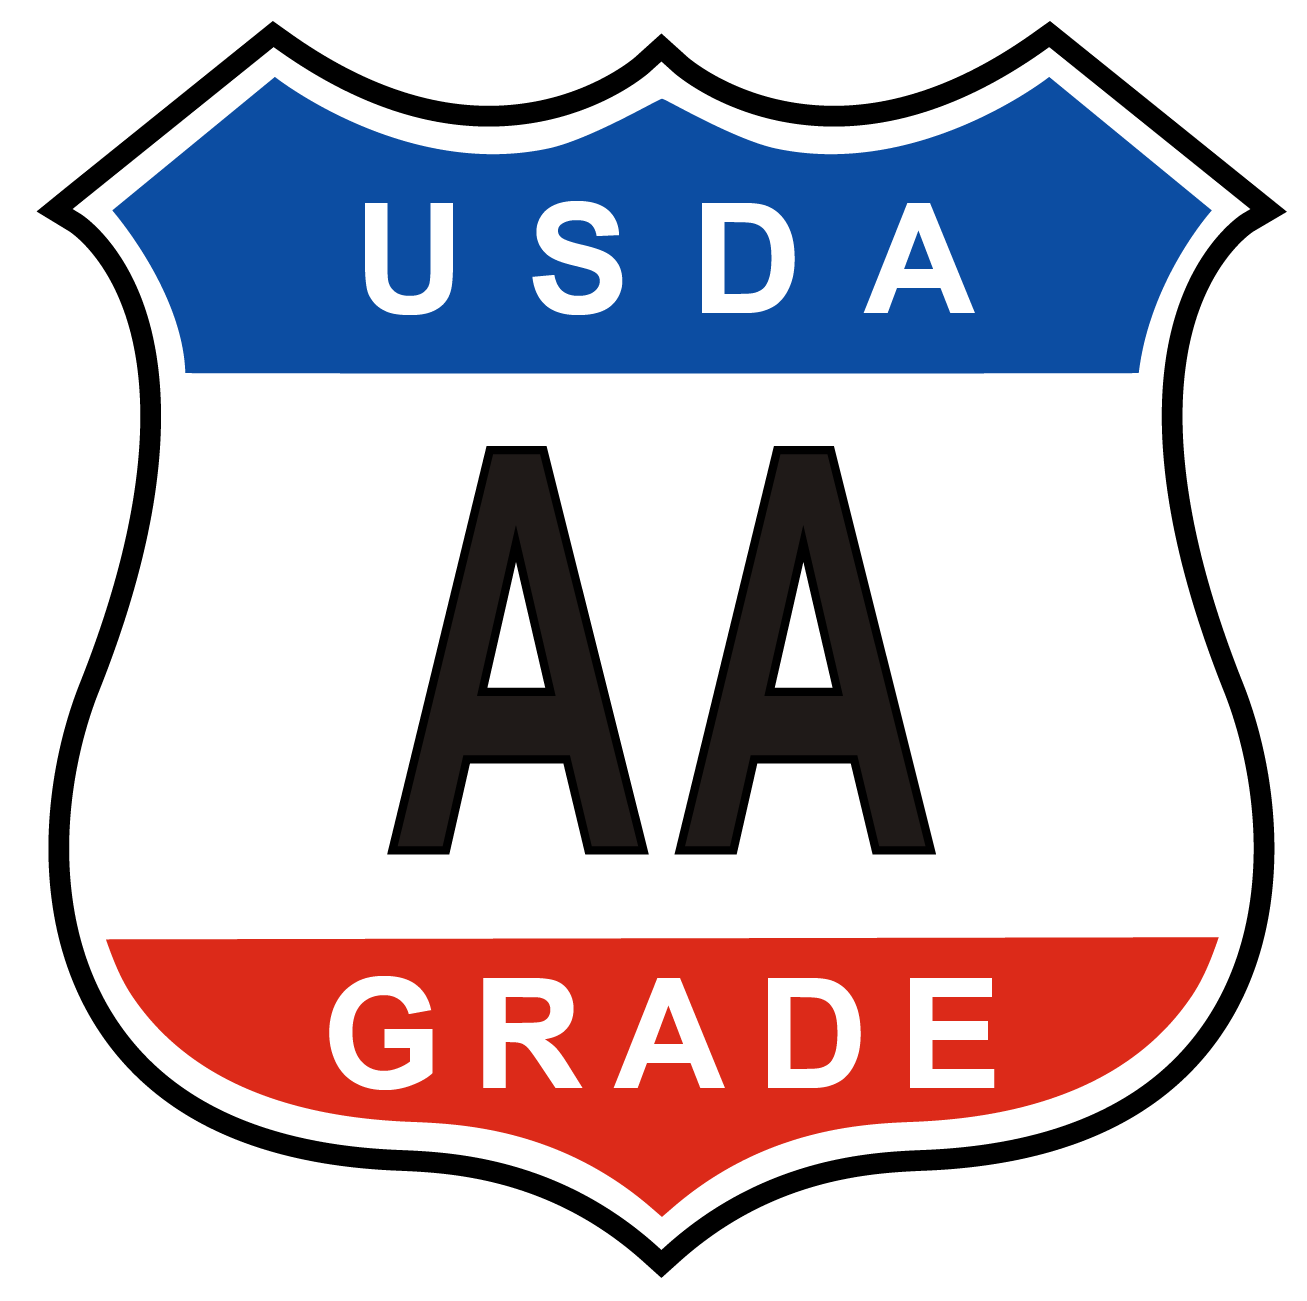 Grades clipart poor grade. Questions and answers usda